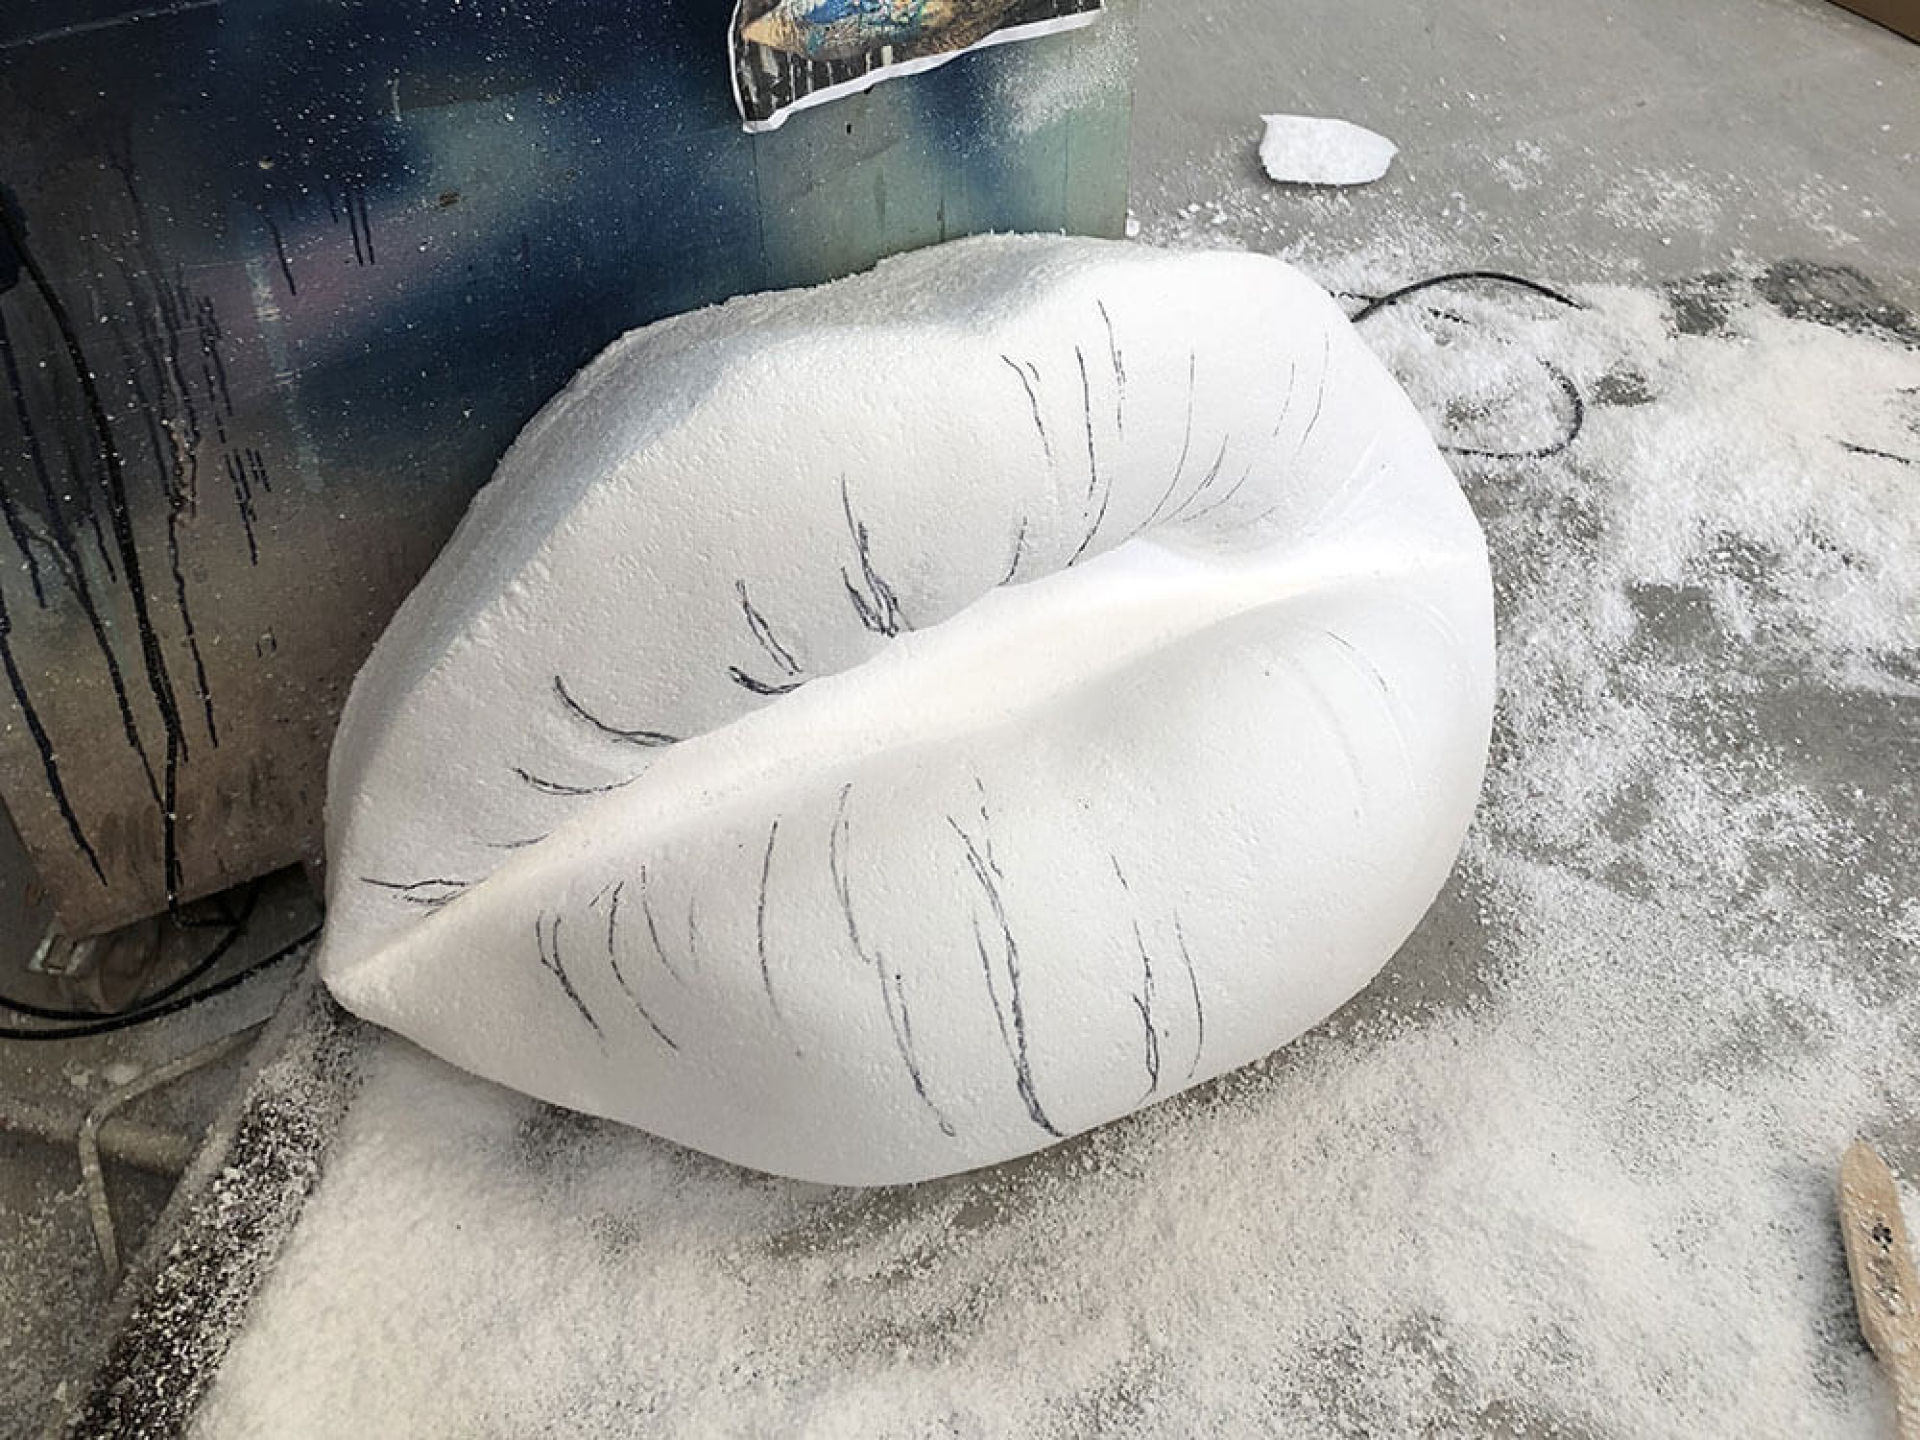 Giant 3d lips sculpted in polystyrene.